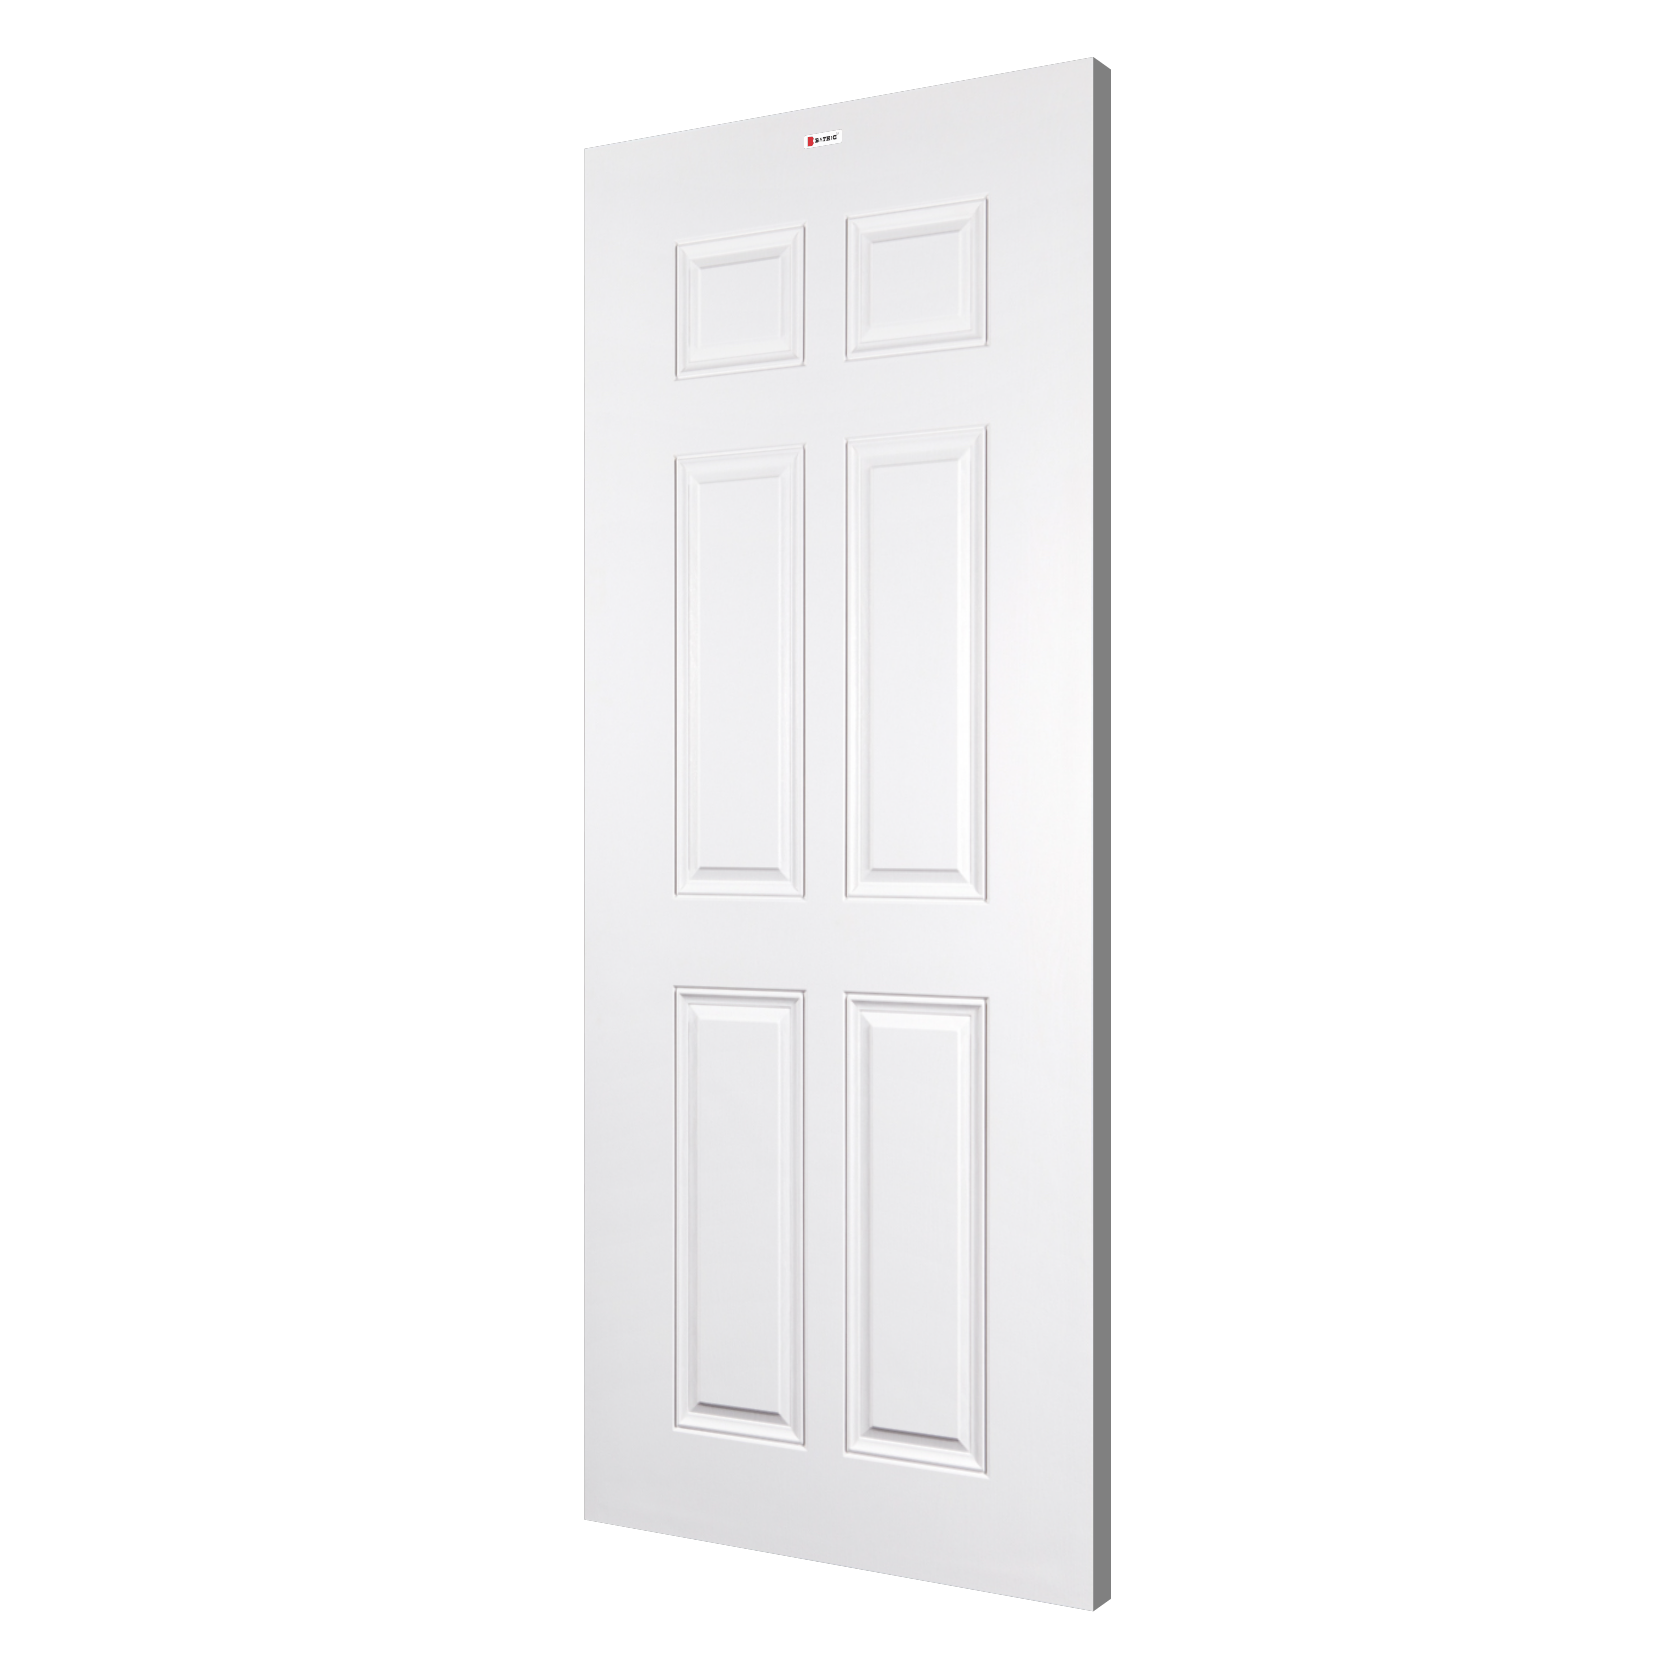 door-upvc-bathic-btu203-white-2